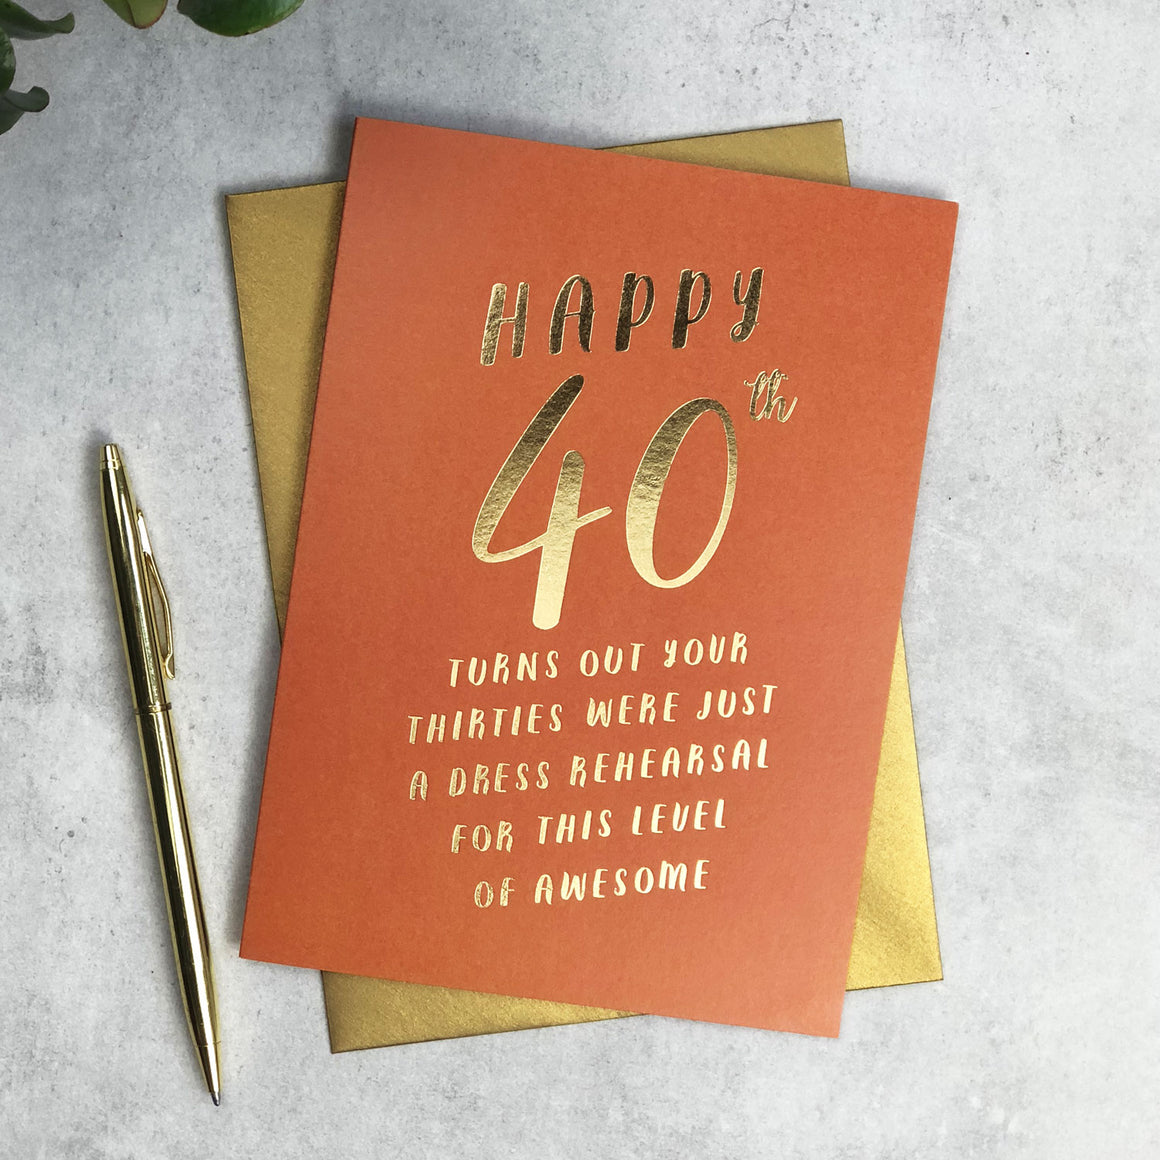 40th Birthday dress rehearsal card